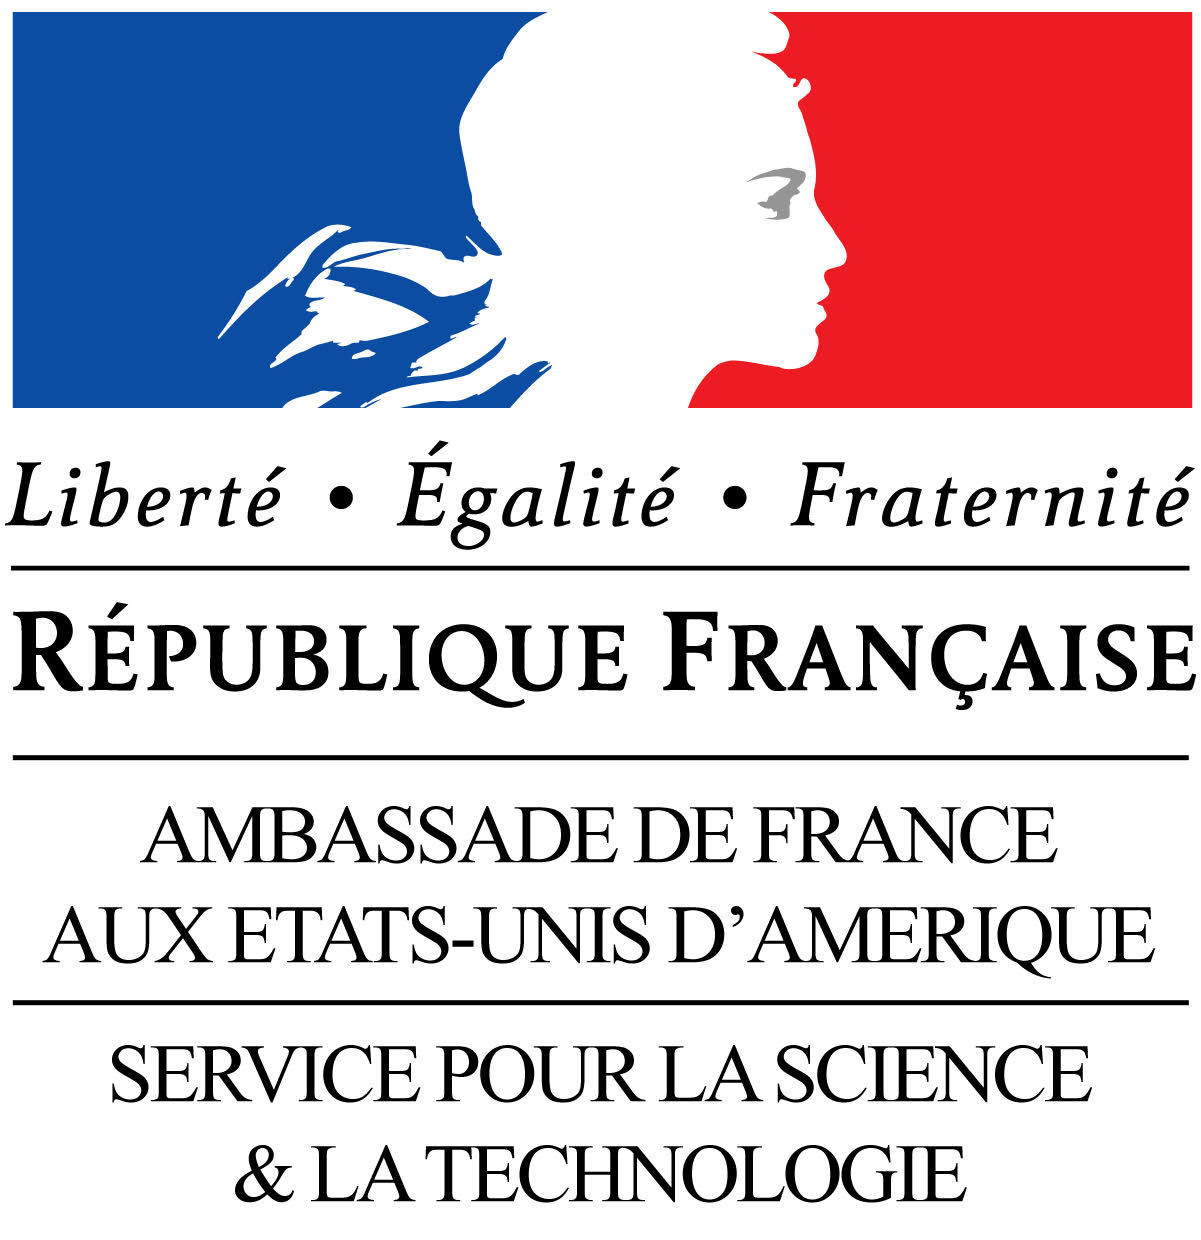 Embassy of France sponsors best paper prize for DiffCVML 2017